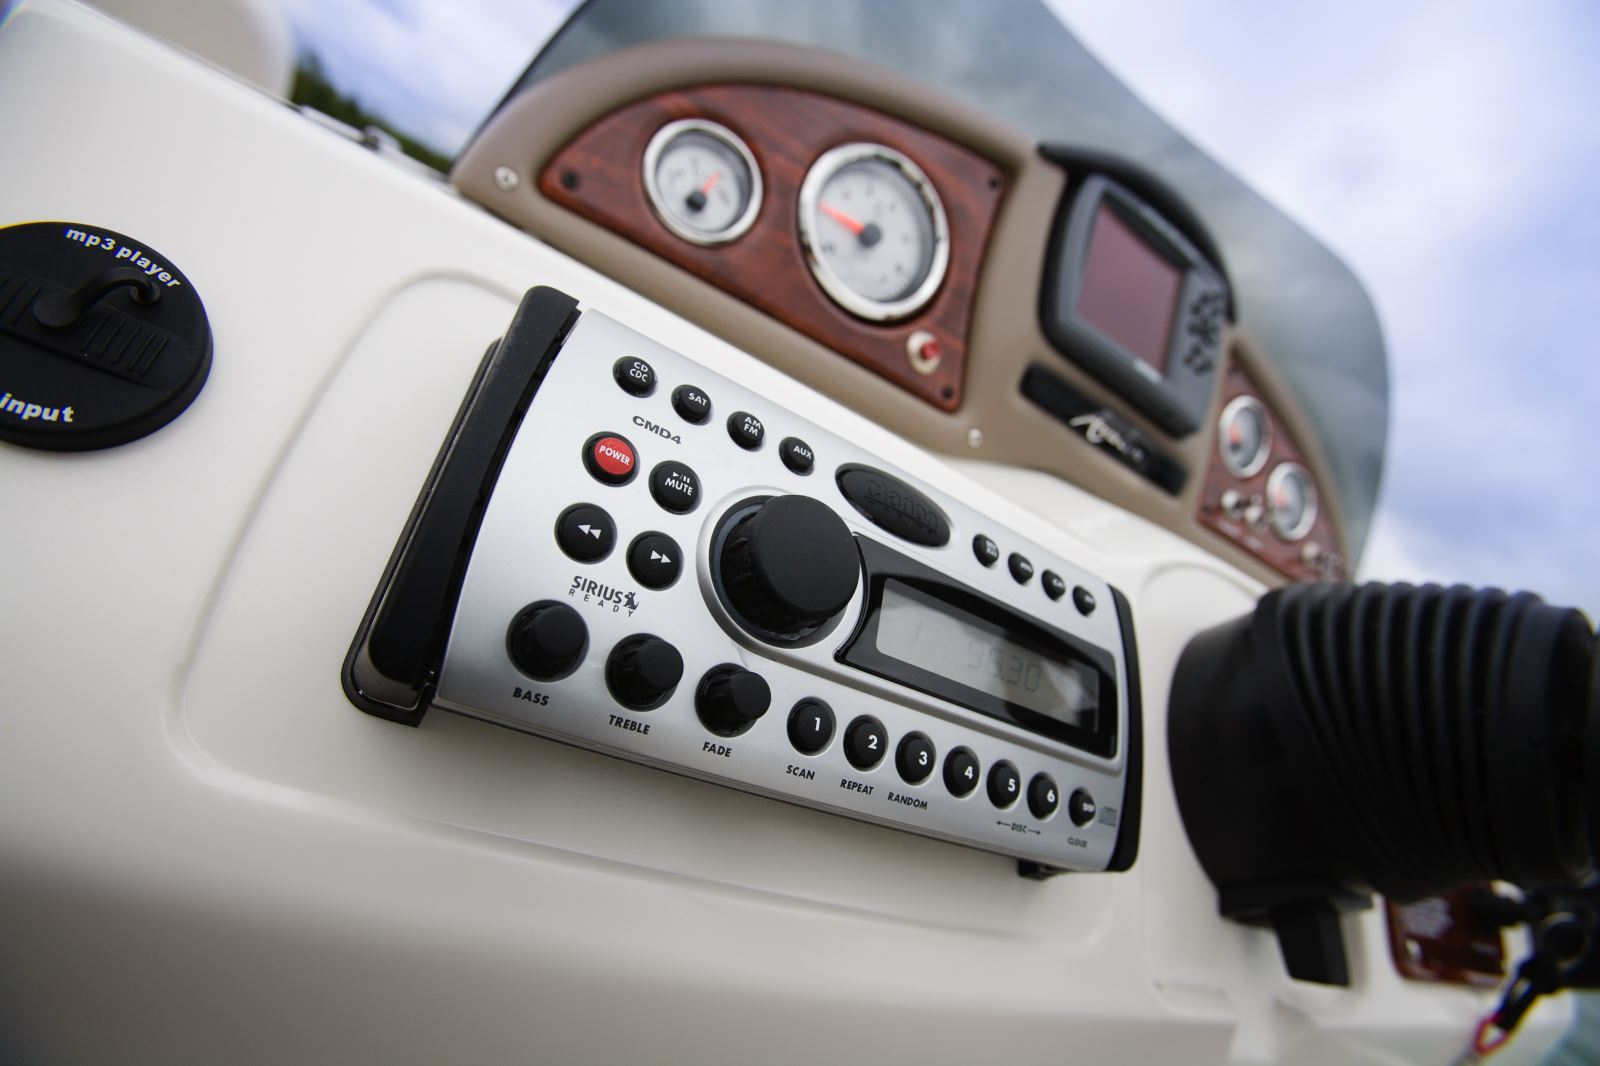 hight resolution of boating electronics best installation practices pontoon deck boat magazine